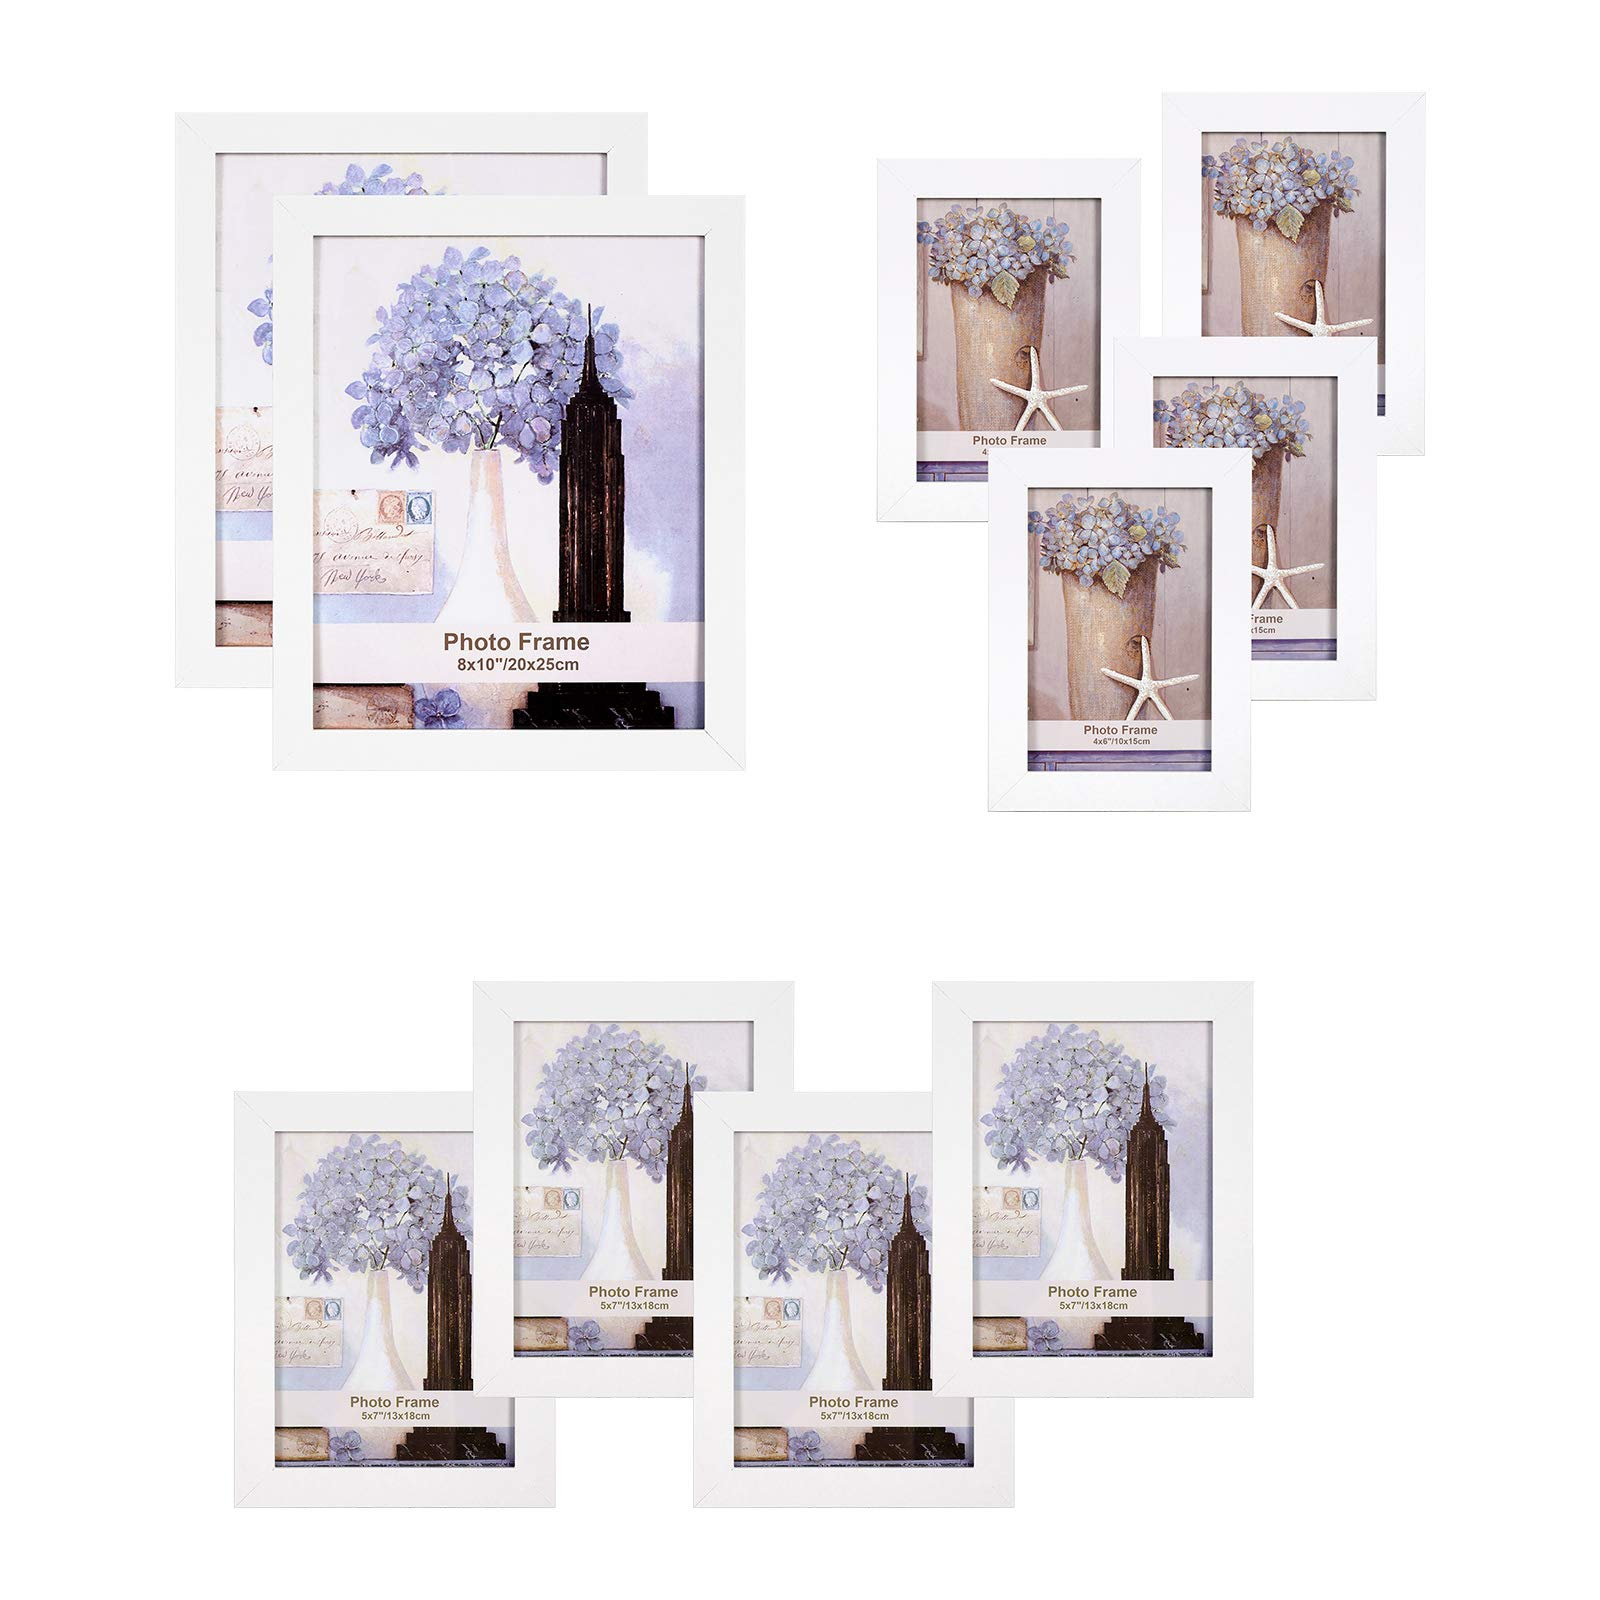 SONGMICS Picture Frames Set of 10, Two 8 x 10 Inch, Four 5 x 7 Inch, Four 4 x 6 Inch, Collage Photo Frames, Clear Glass Front, White URPF10WT by SONGMICS